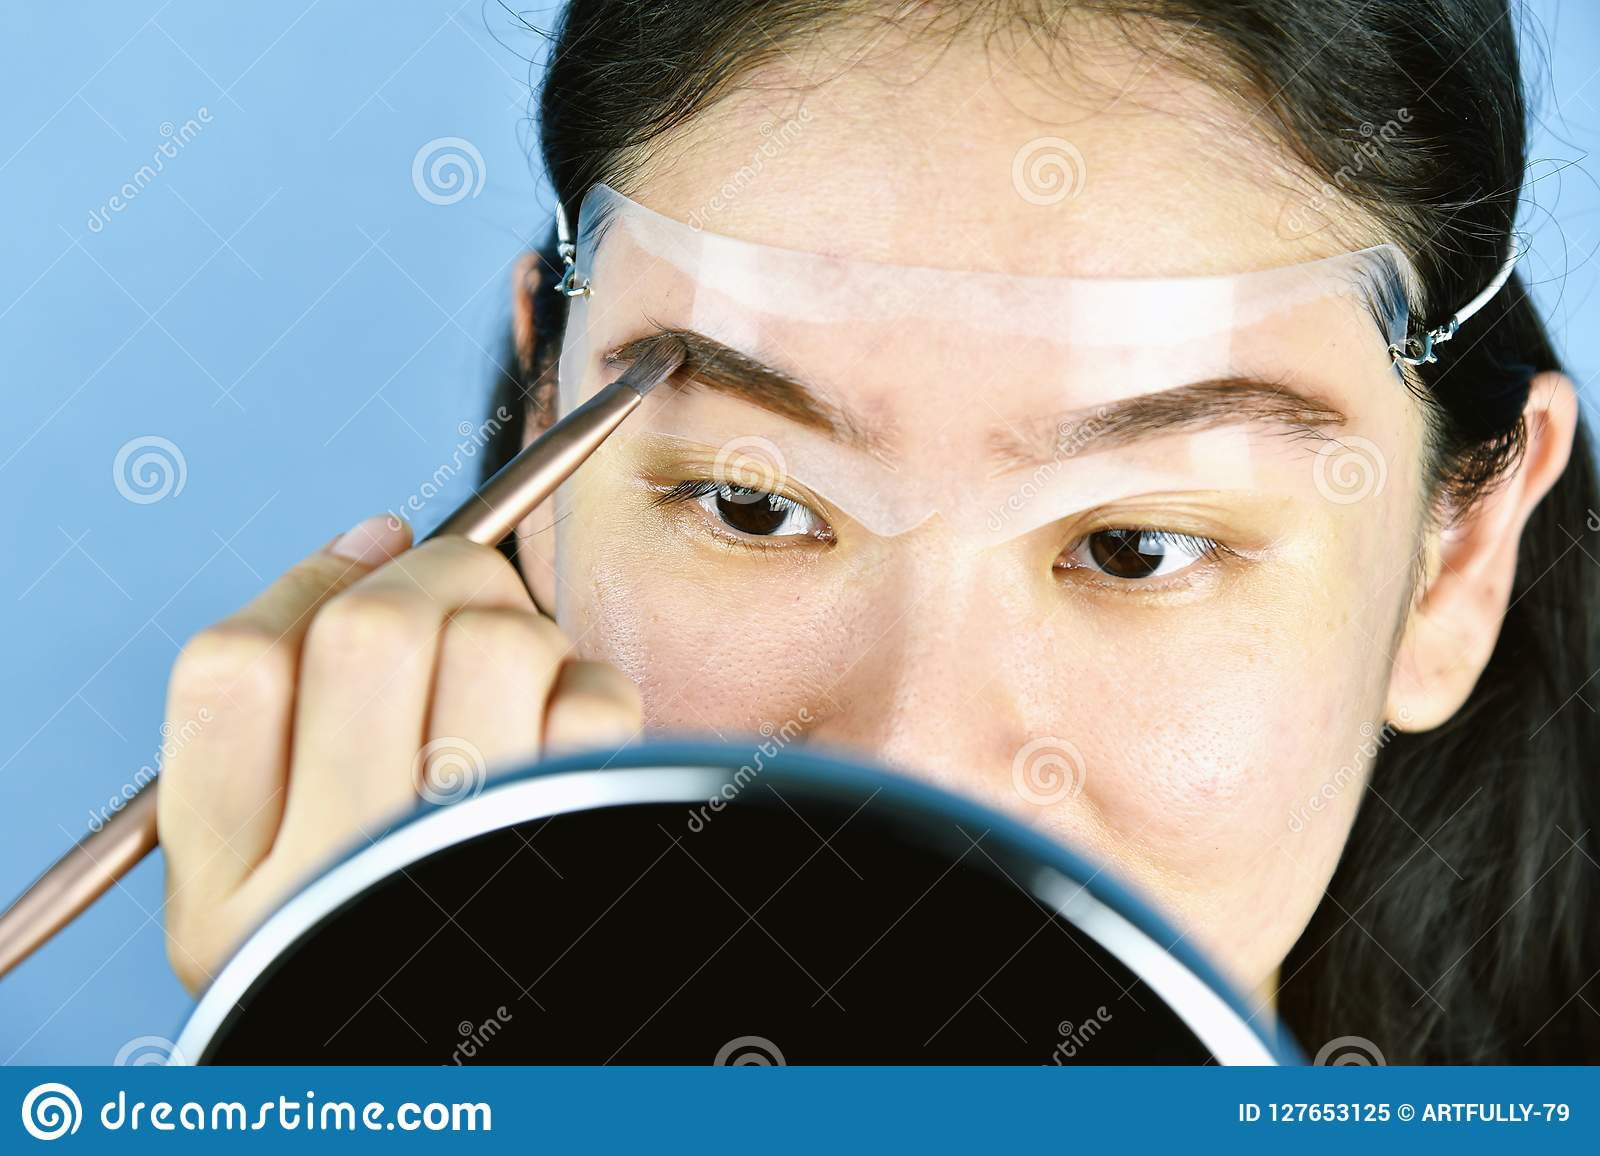 Asian Woman Applying Cosmetics Makeup Eyebrows Template Head Strap Eyebrow Use For Shaping Perfect Brows